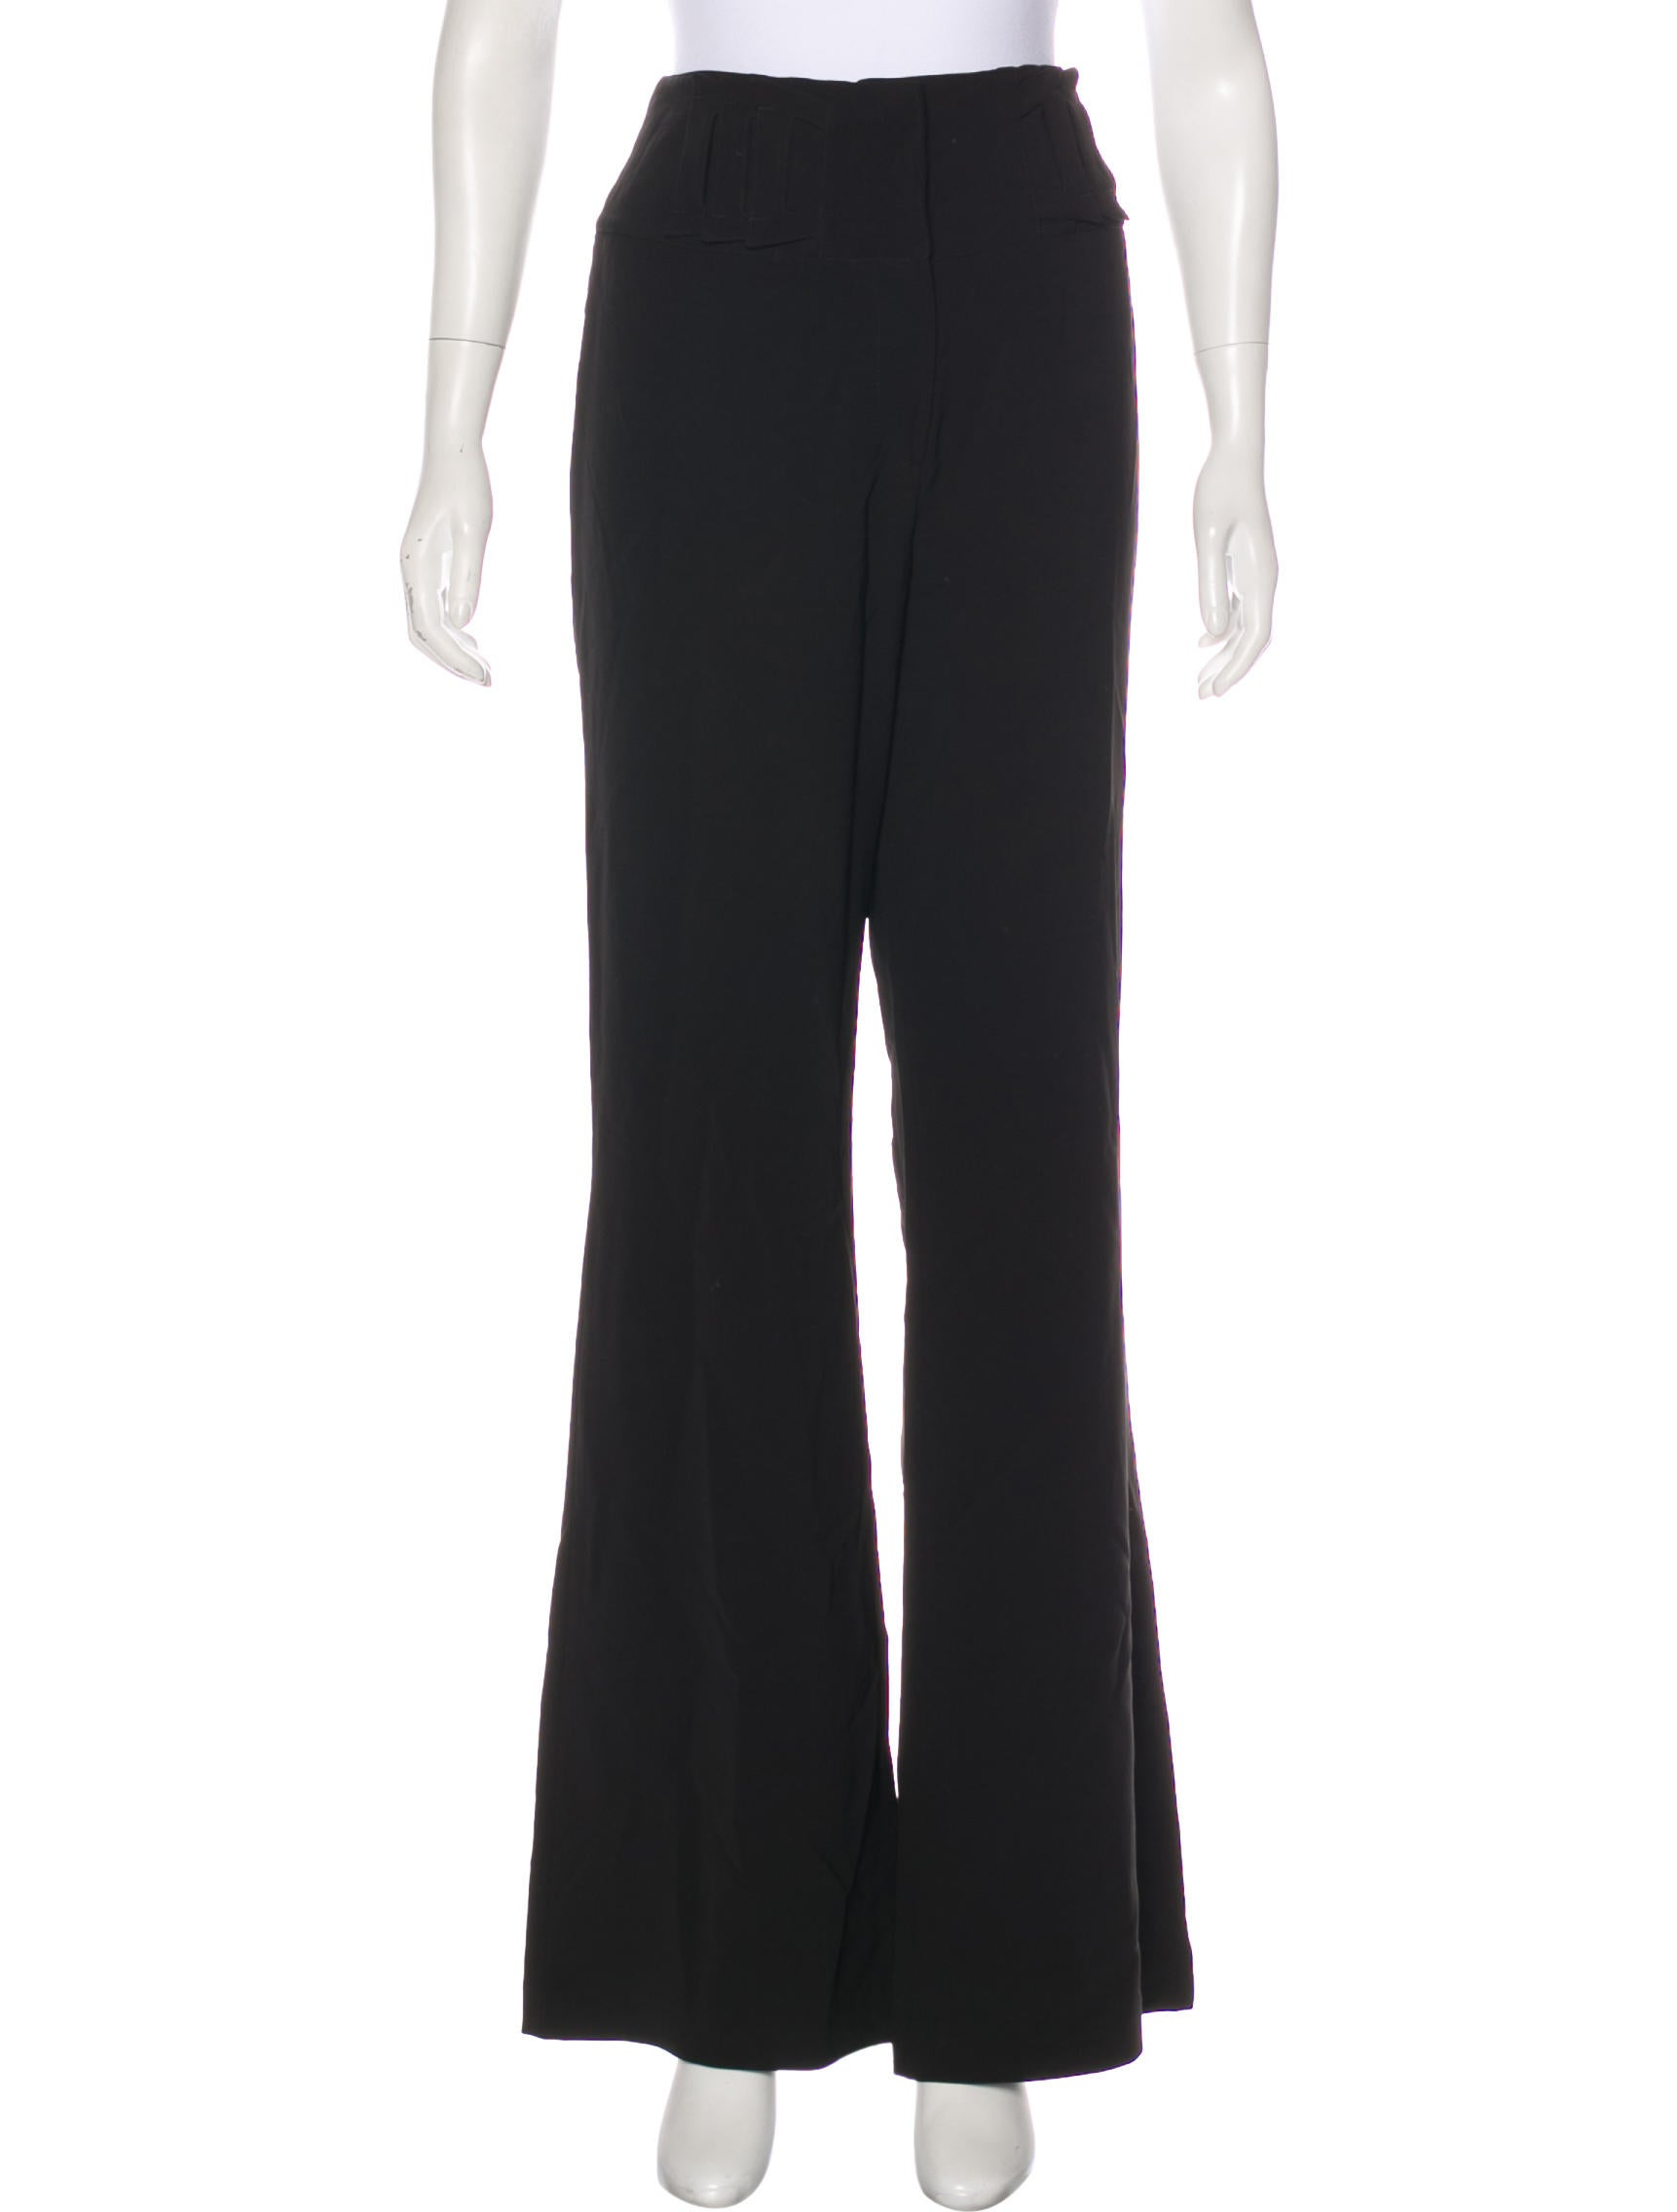 Alberto Makali High-Rise Flared Pants Cheap With Mastercard 2RdrW9A